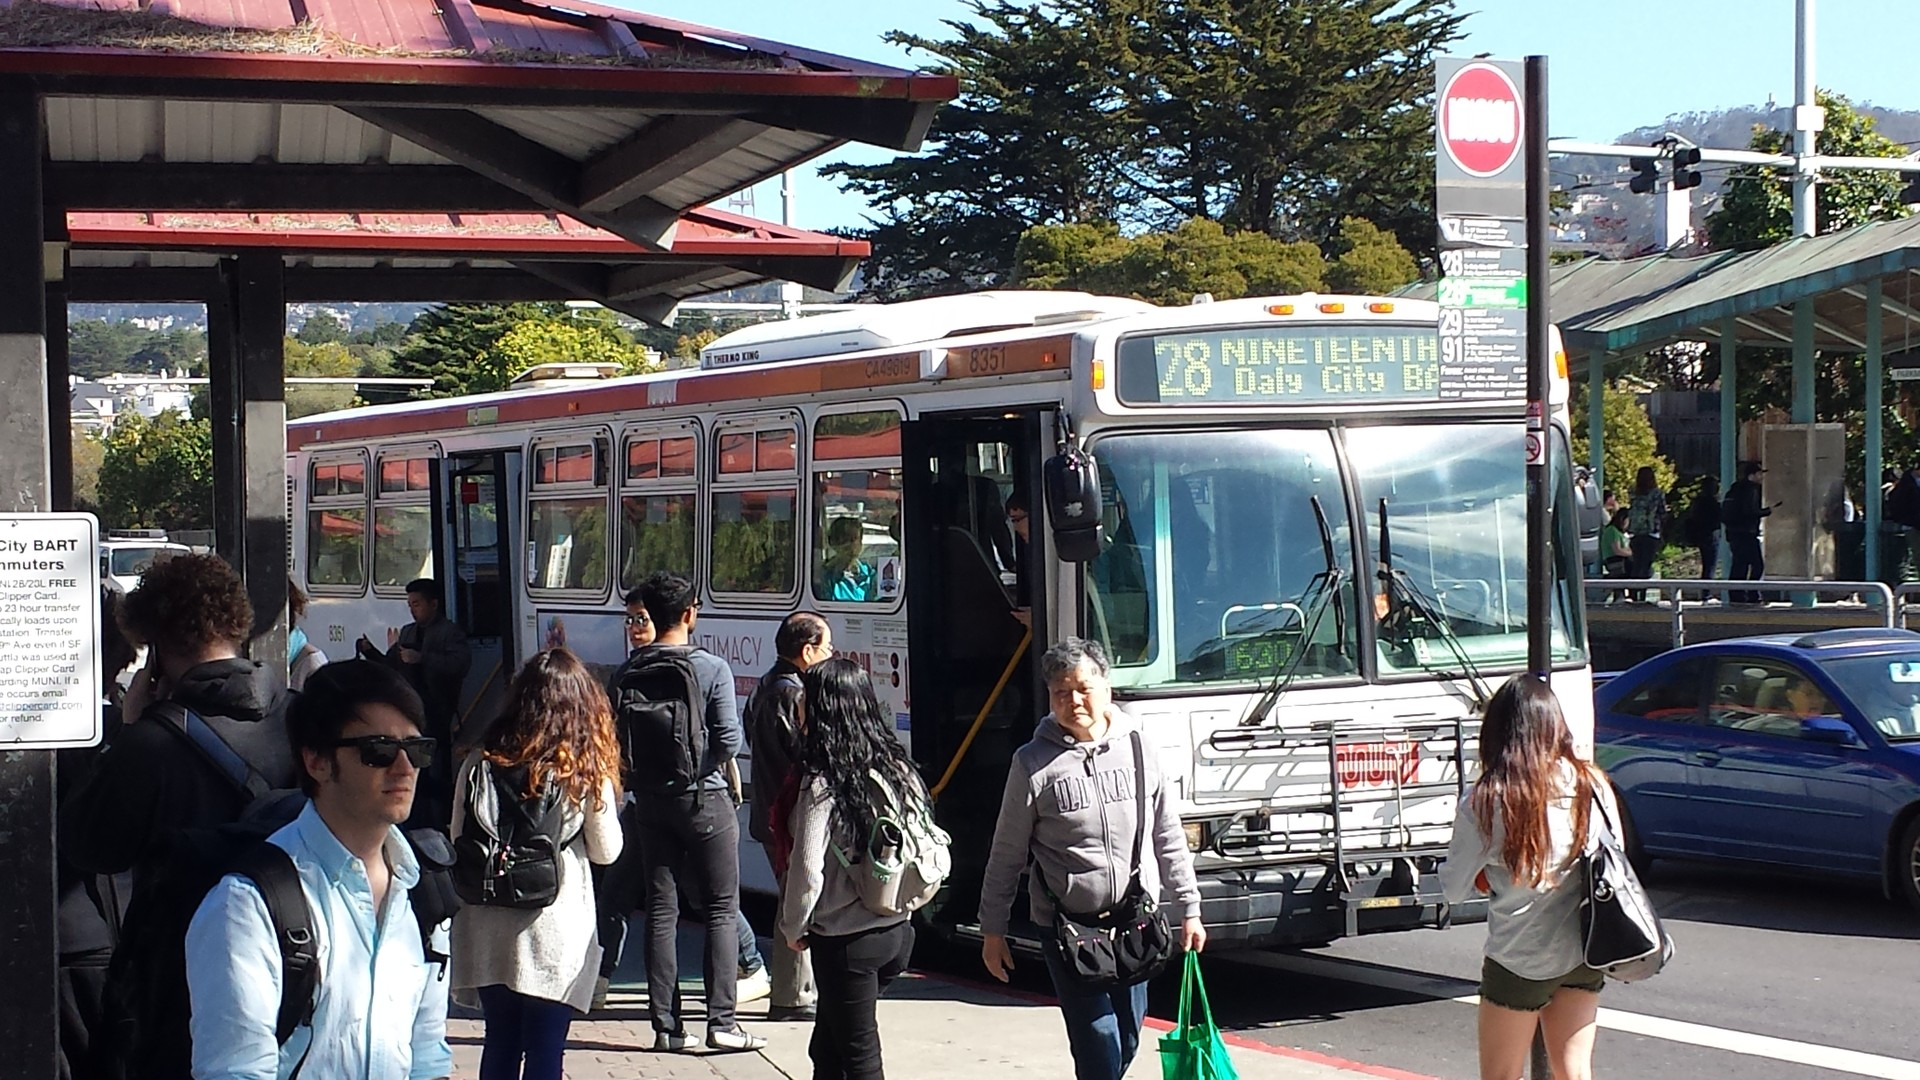 A Muni bus stops at 19th and Holloway avenues, near San Francisco State University, on March 17, 2014.